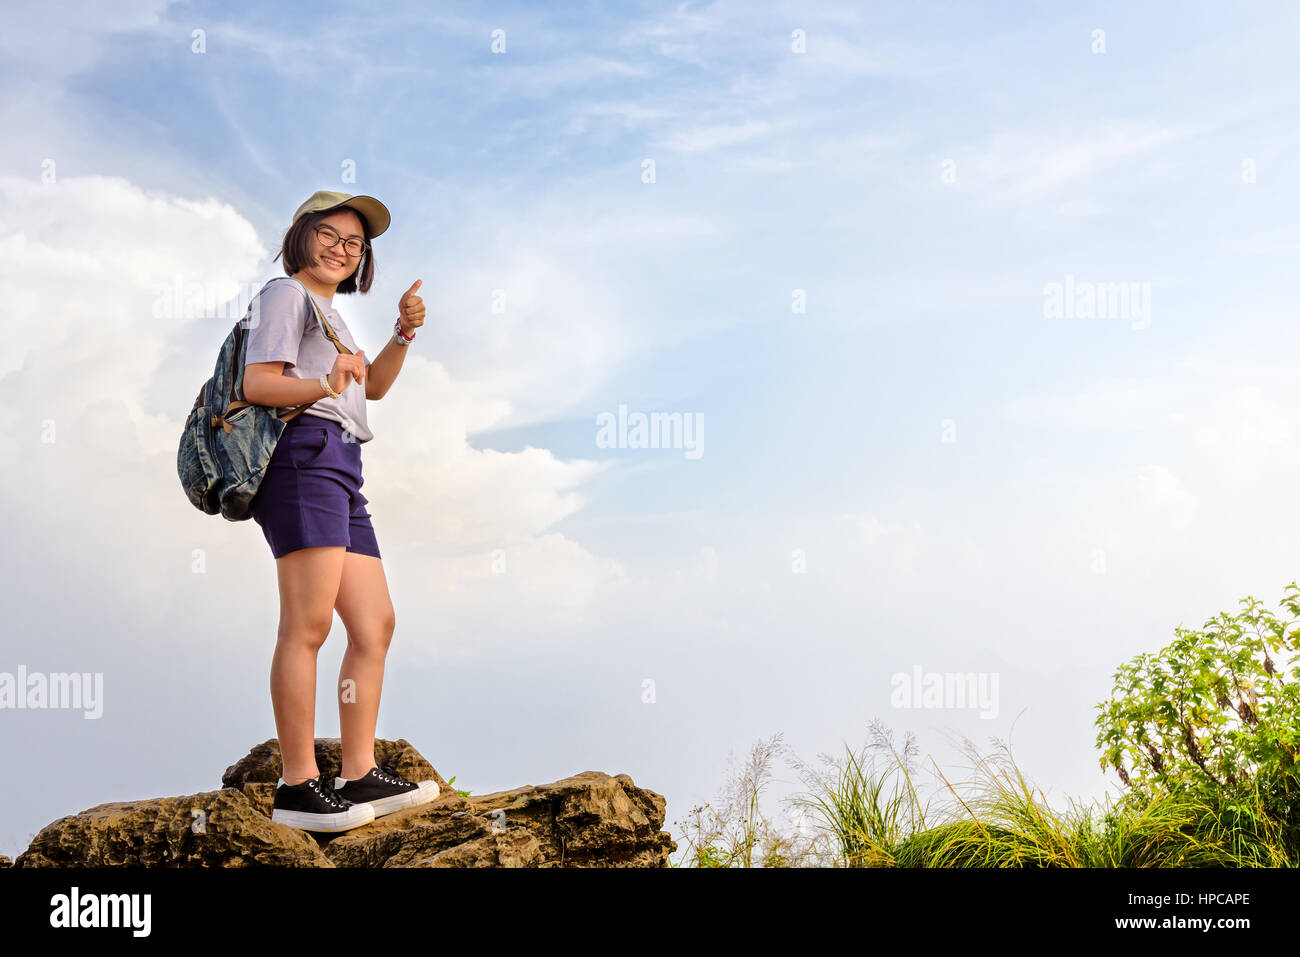 Cute Teens happy hiker asian cute teens girl with backpack cap and glasses